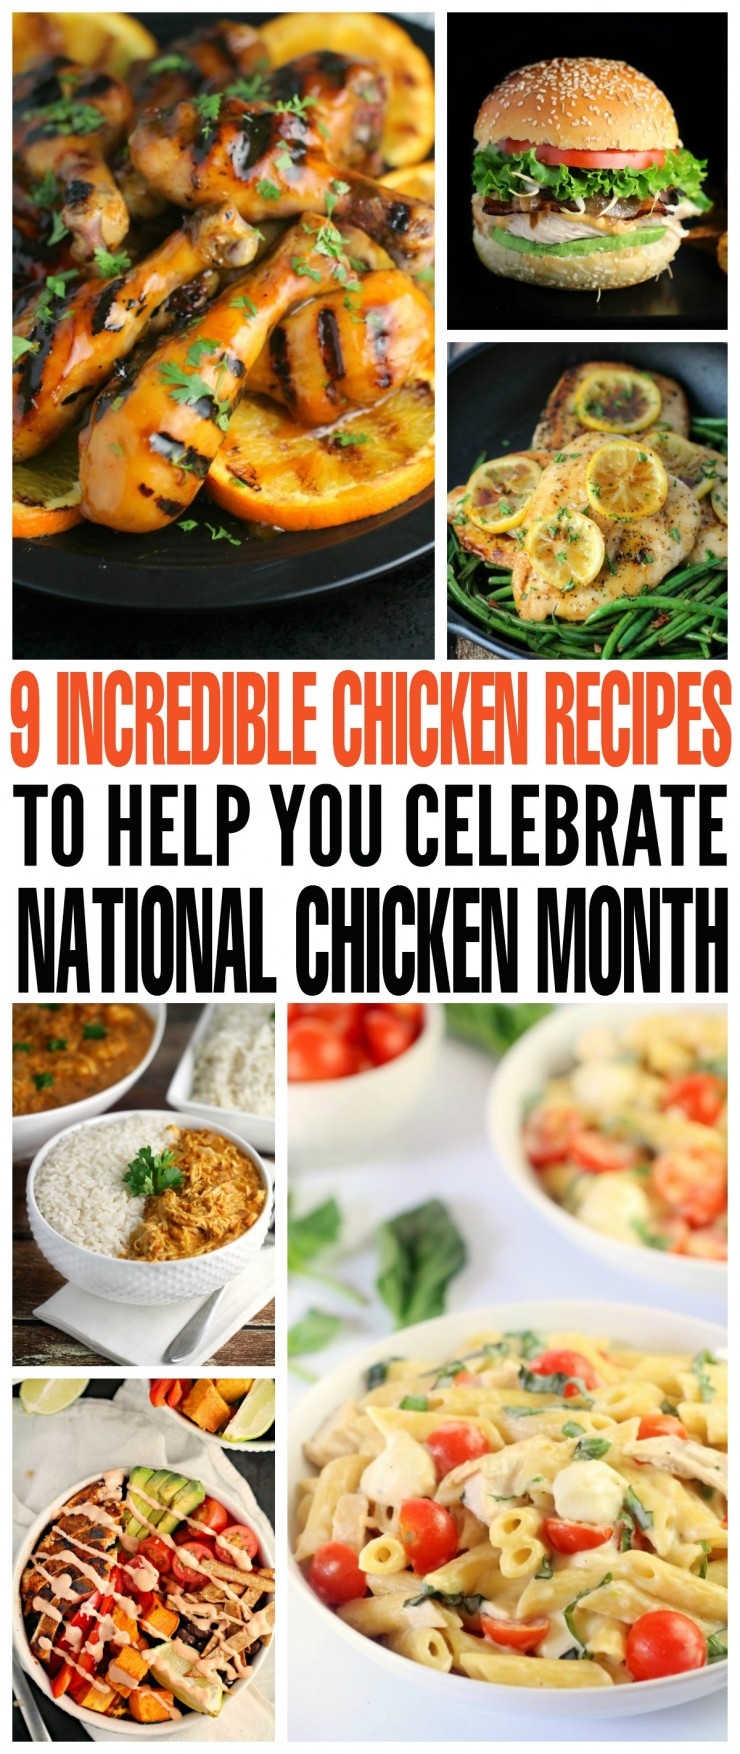 9 Incredible Chicken Recipes to Help you Celebrate National Chicken Month - September is Chicken Month so head to your kitchen and start cooking up some of these delicious chicken dinner recipes!